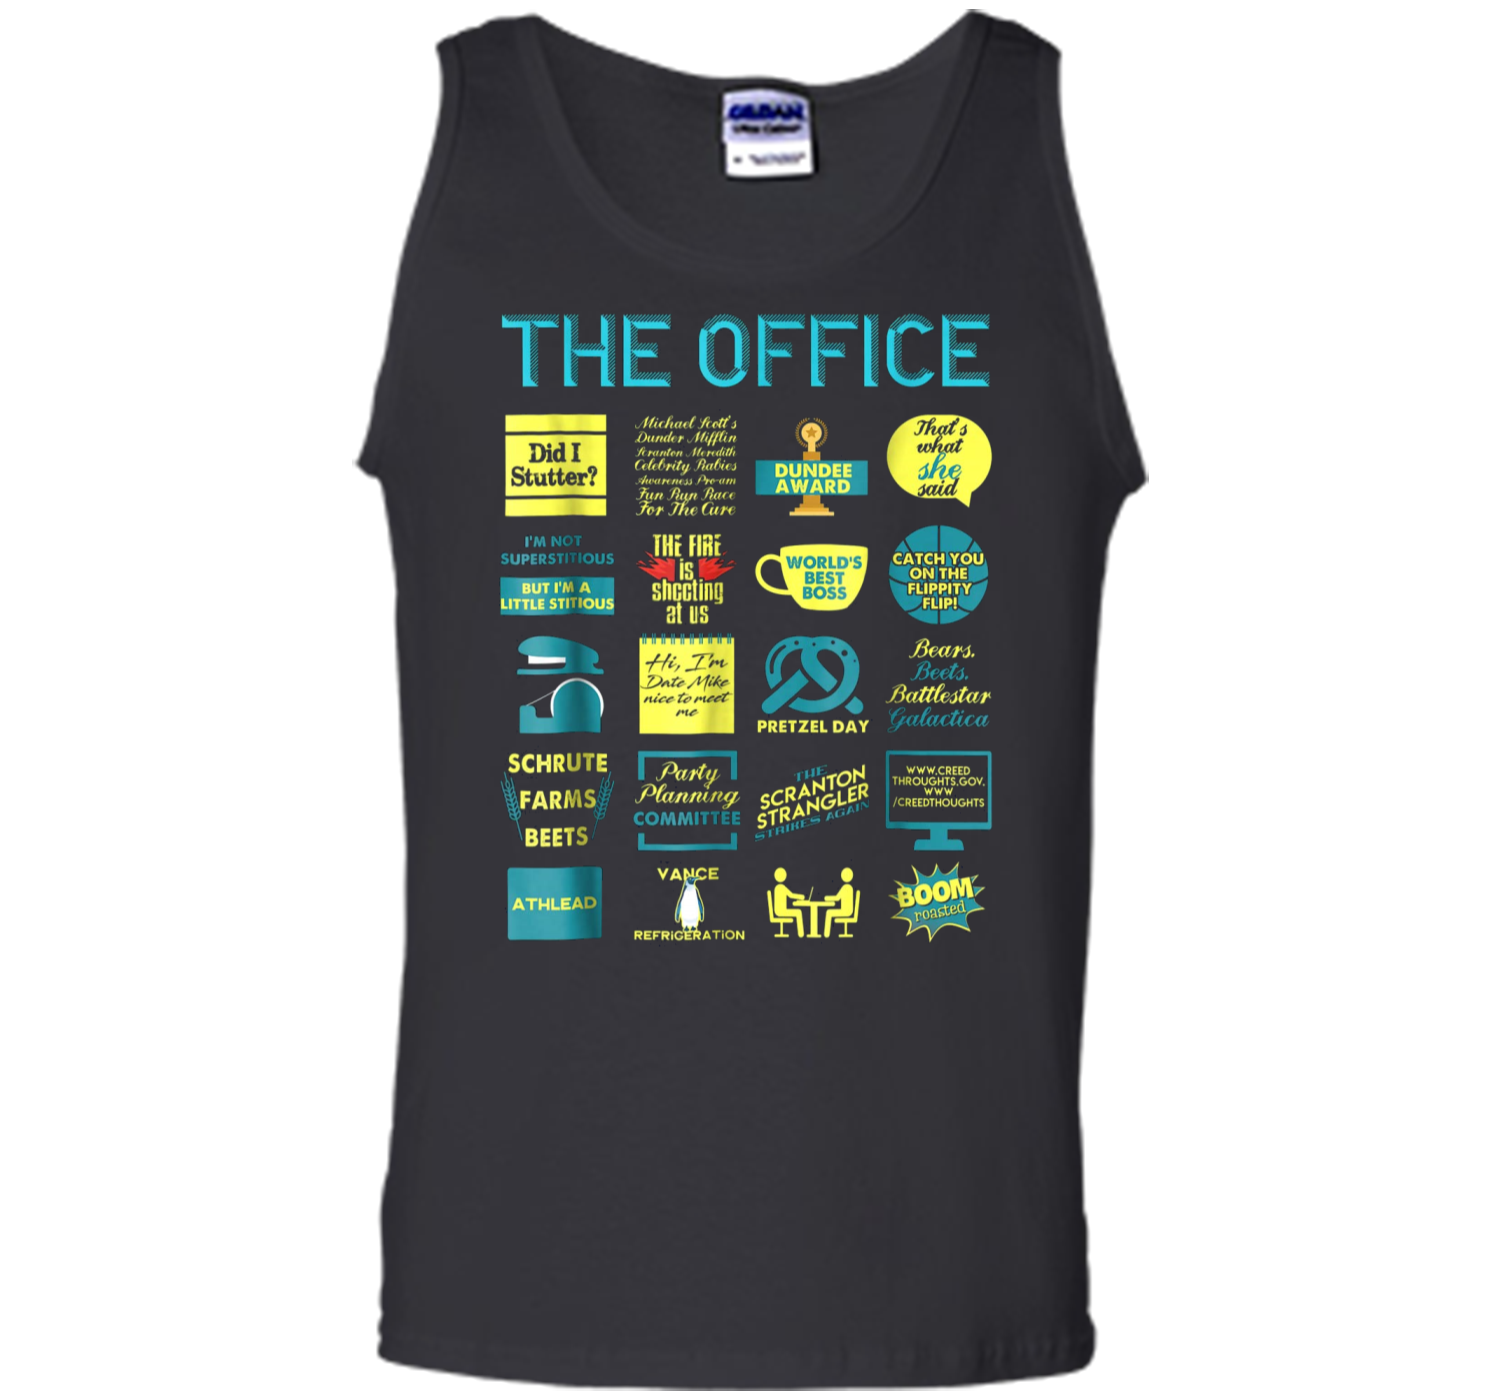 32a309807 The Office Quote Mash-Up Funny - Official Tee Tank Top Tank Top ...